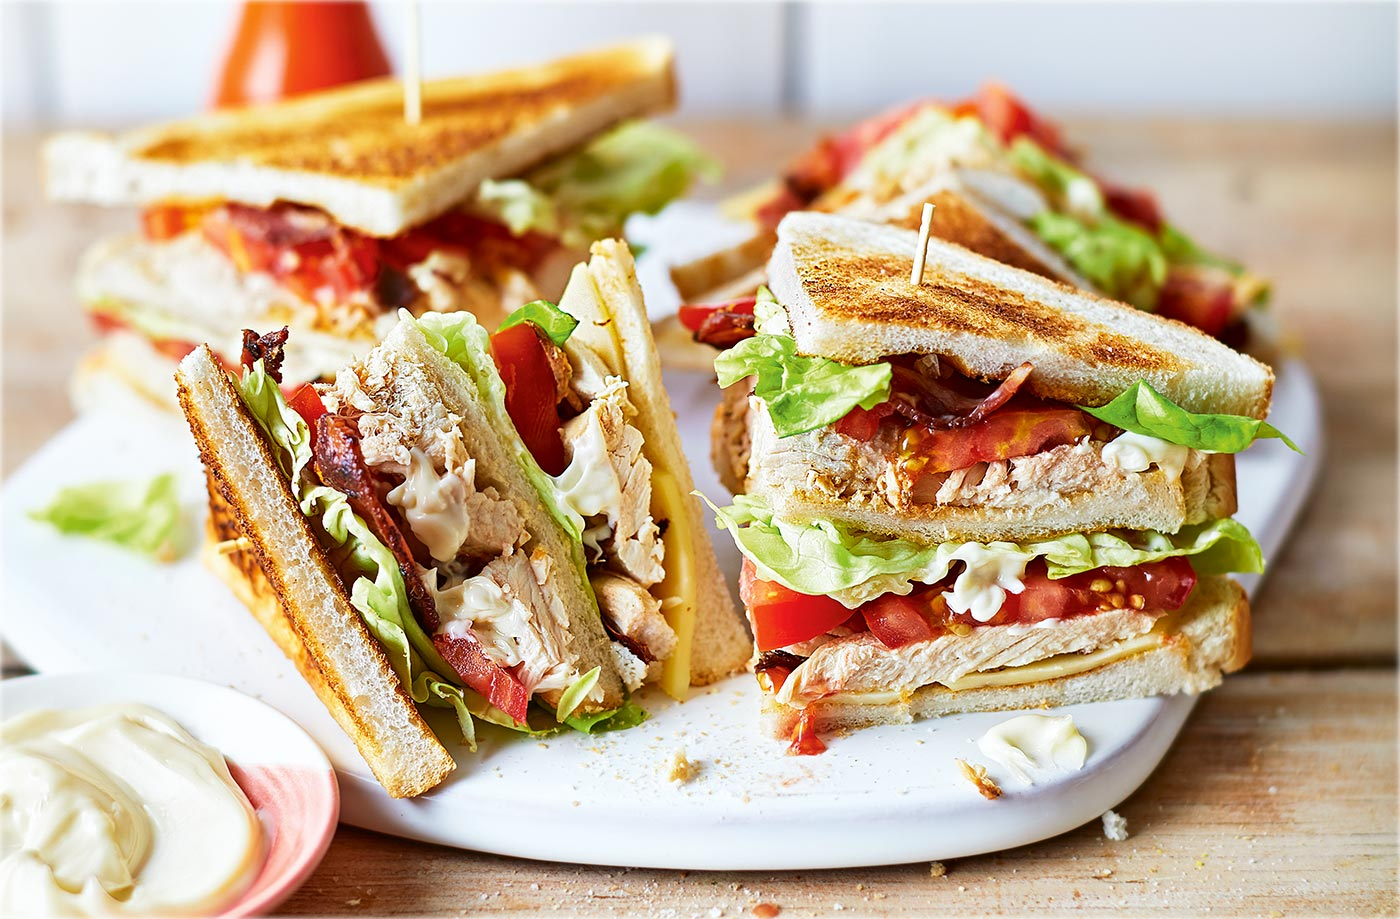 club sandwich - The Best Food for Successful First Date